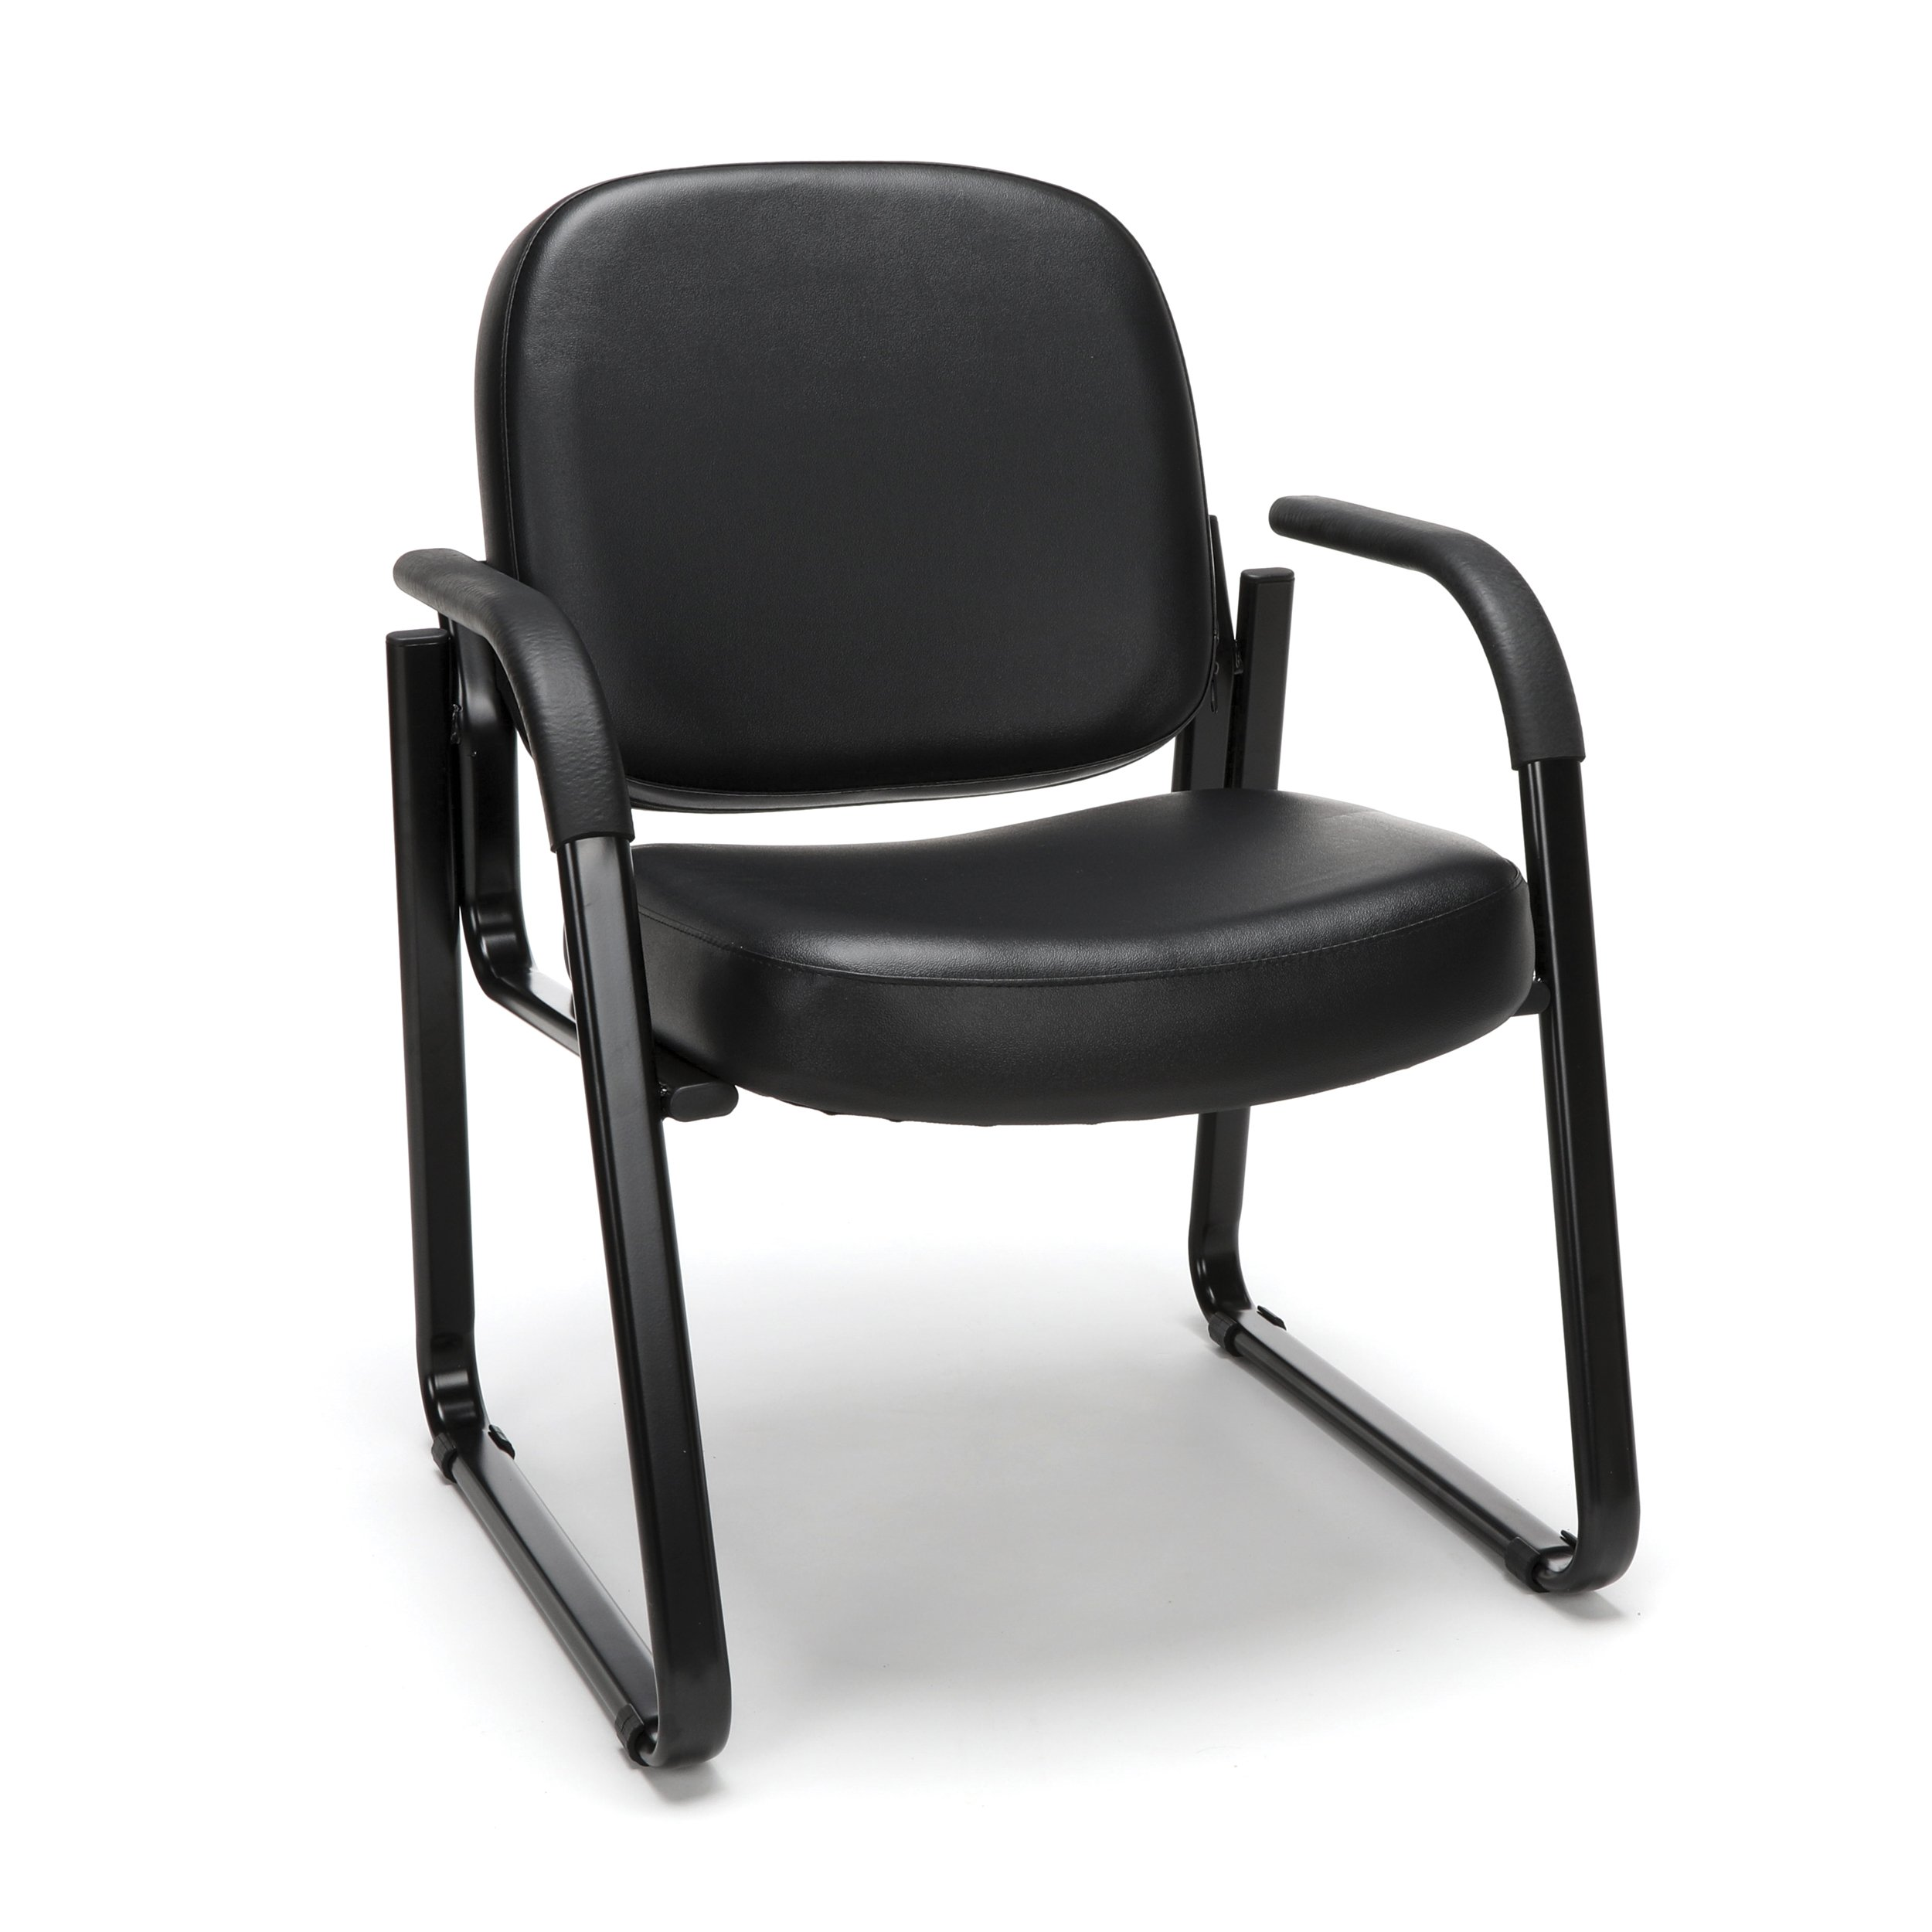 OFM Model 403-VAM Guest and Reception Chair with Arms, Anti-Microbial/Anti-Bacterial Vinyl, Black by OFM (Image #1)